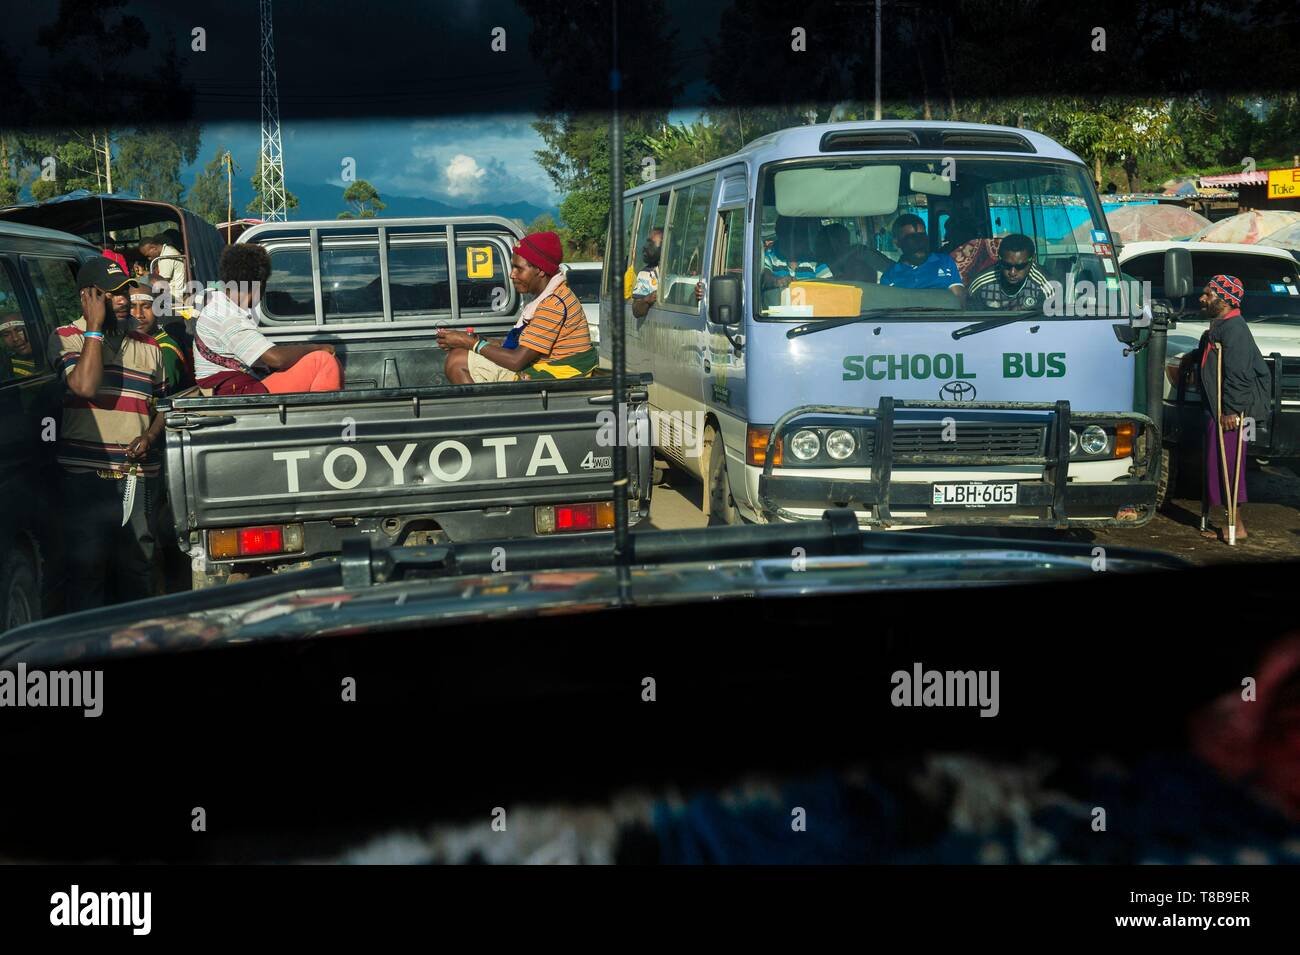 Papua New Guinea, Enga Province, Enga tribe, Wabag region, road traffic seen from a PMV - Stock Image